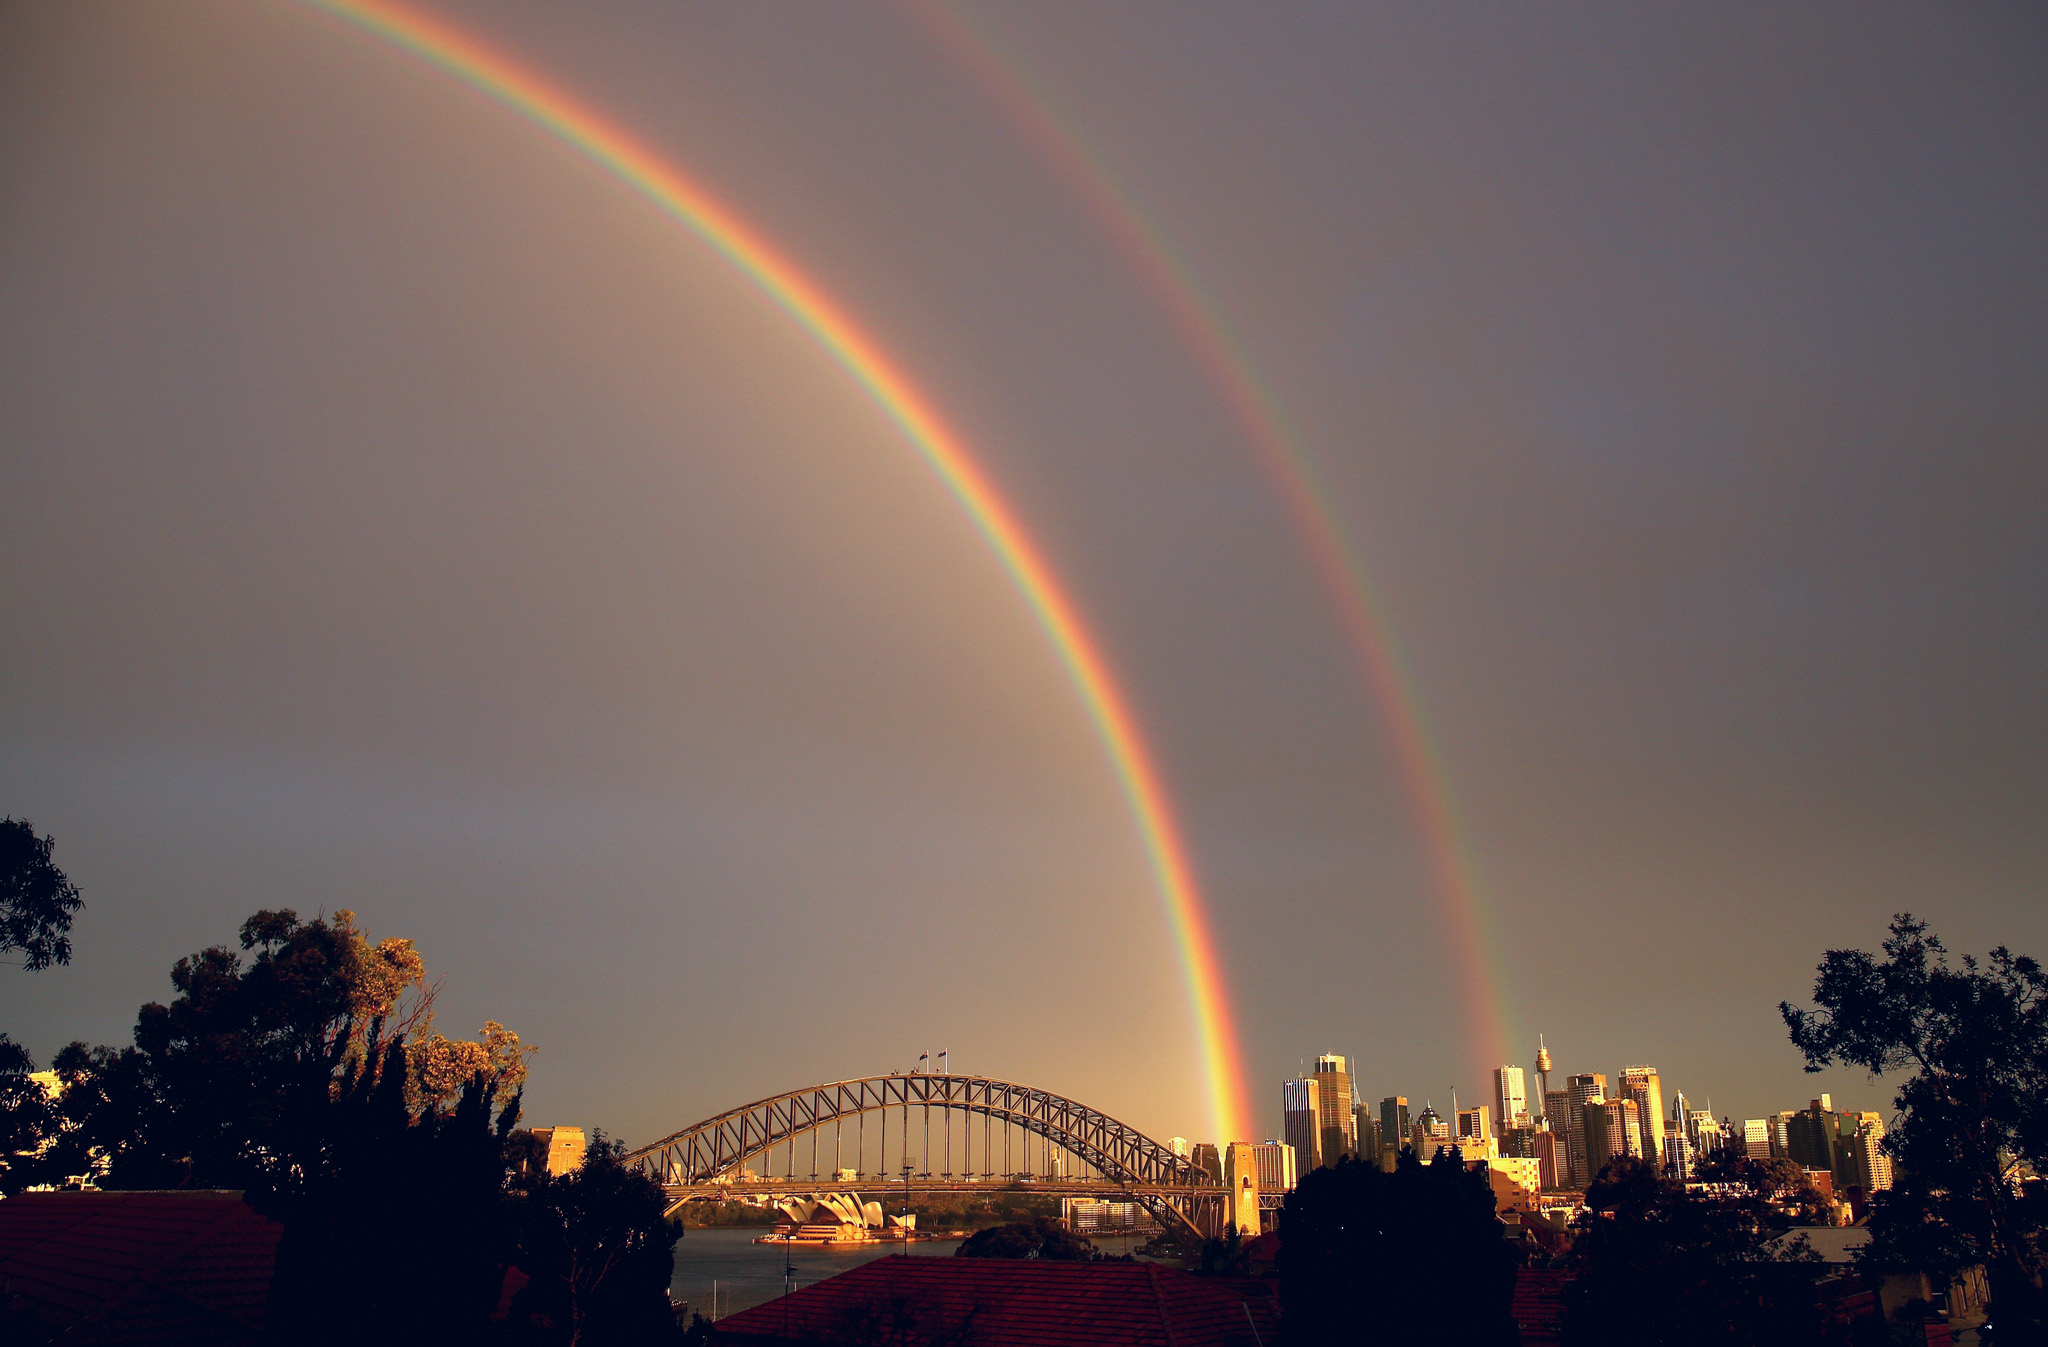 Rainbows Light Up Sydney Harbour...SYDNEY, AUSTRALIA - JUNE 17:  A rainbow is seen over the Sydney Harbour Bridge on June 17, 2015 in Sydney, Australia.  (Photo by Cameron Spencer/Getty Images)